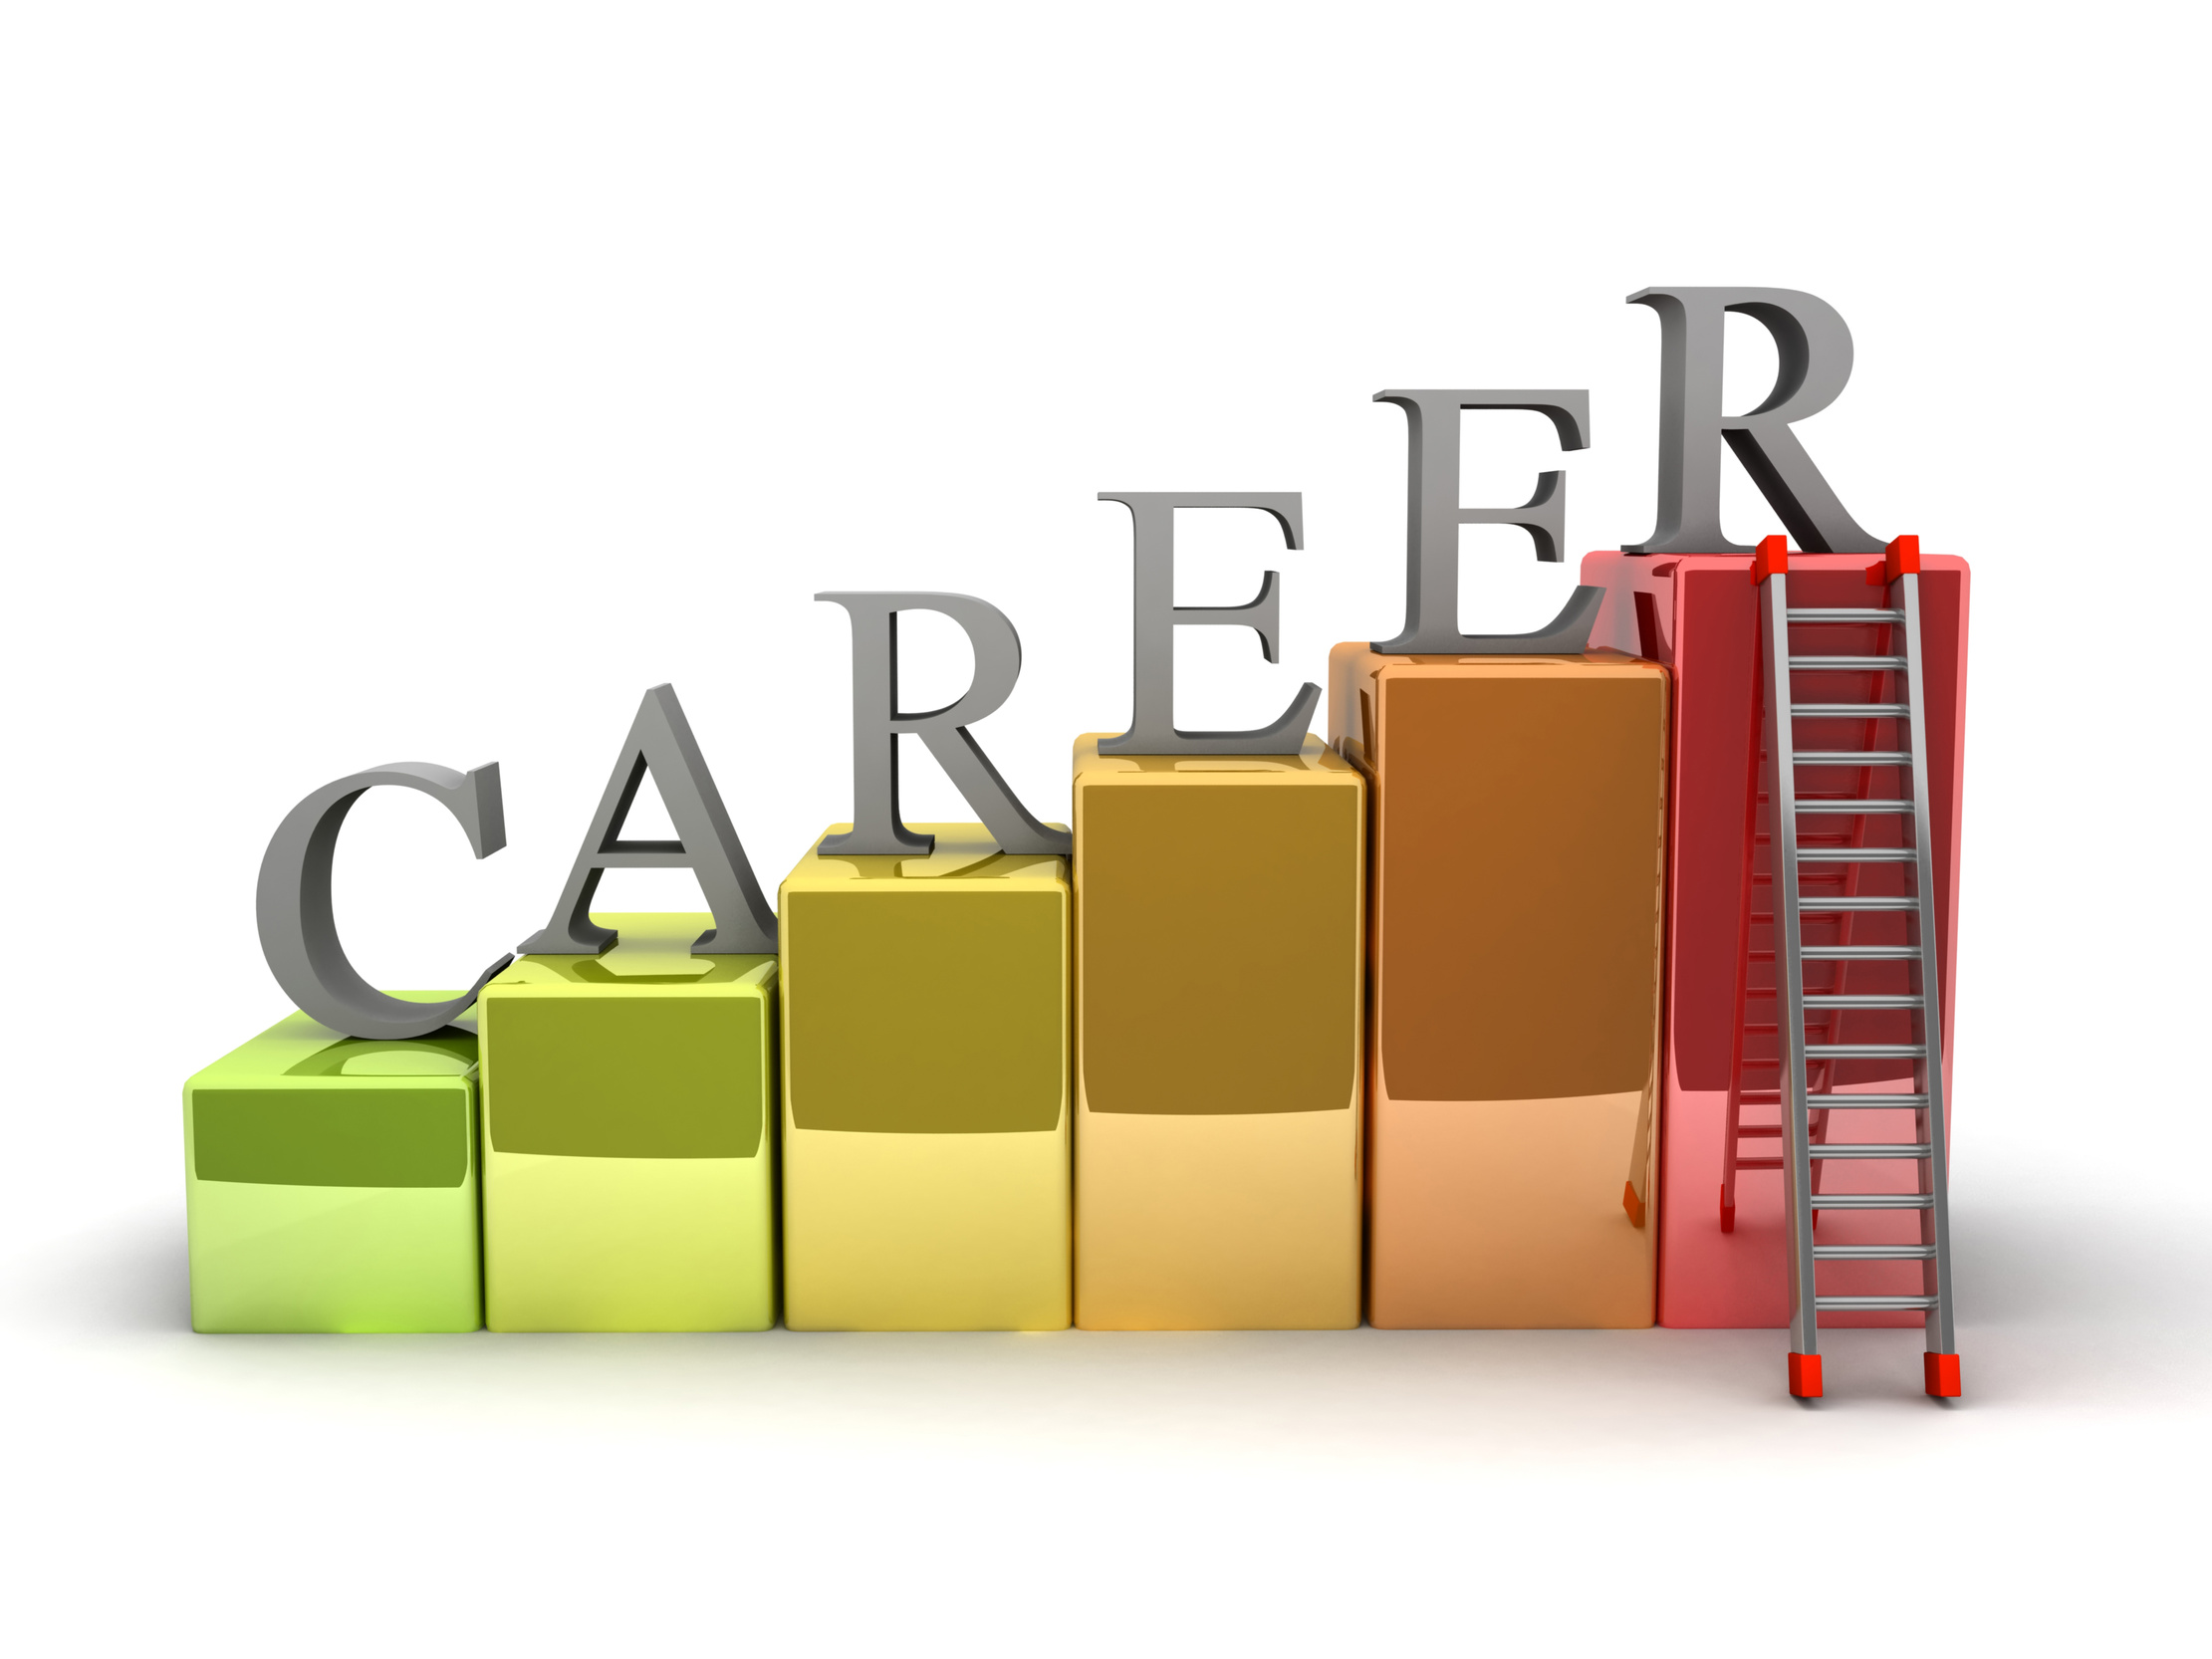 Pathway clipart career pathway. Images free download best